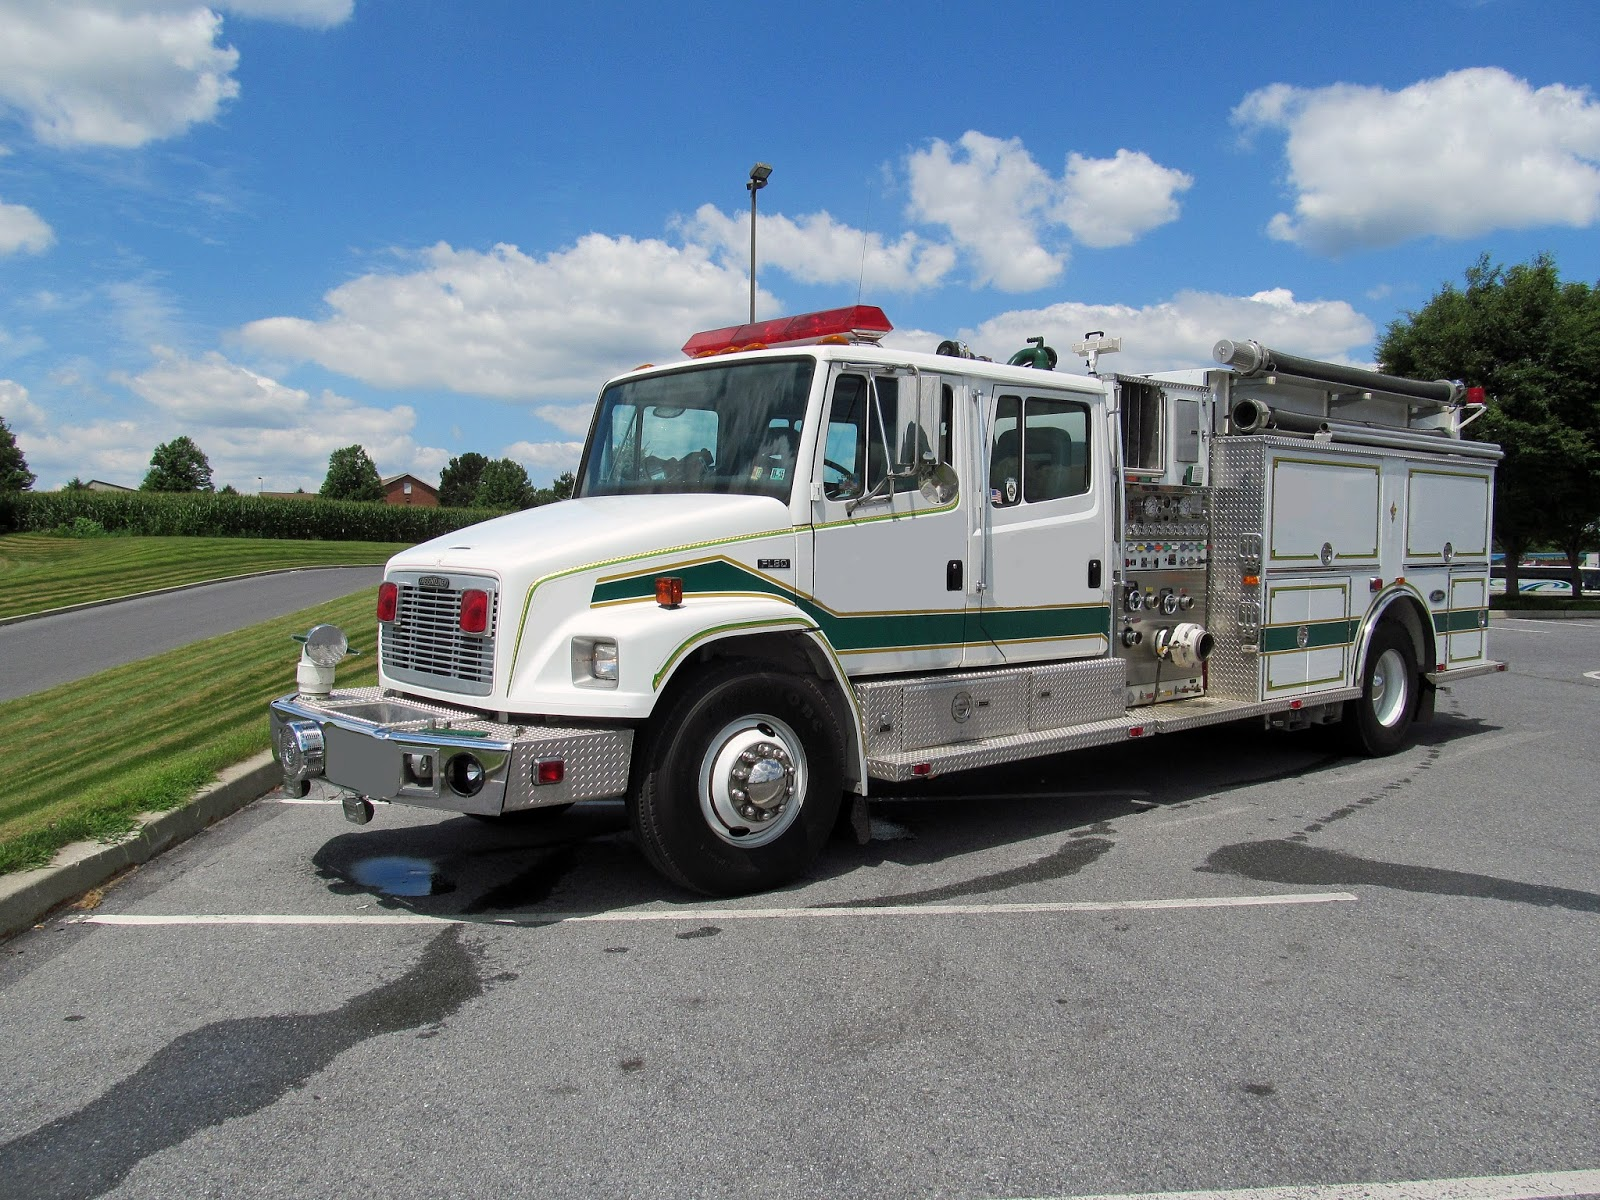 Used Fire Trucks For Sale >> Fire Line Equipment Used Fire Trucks For Sale